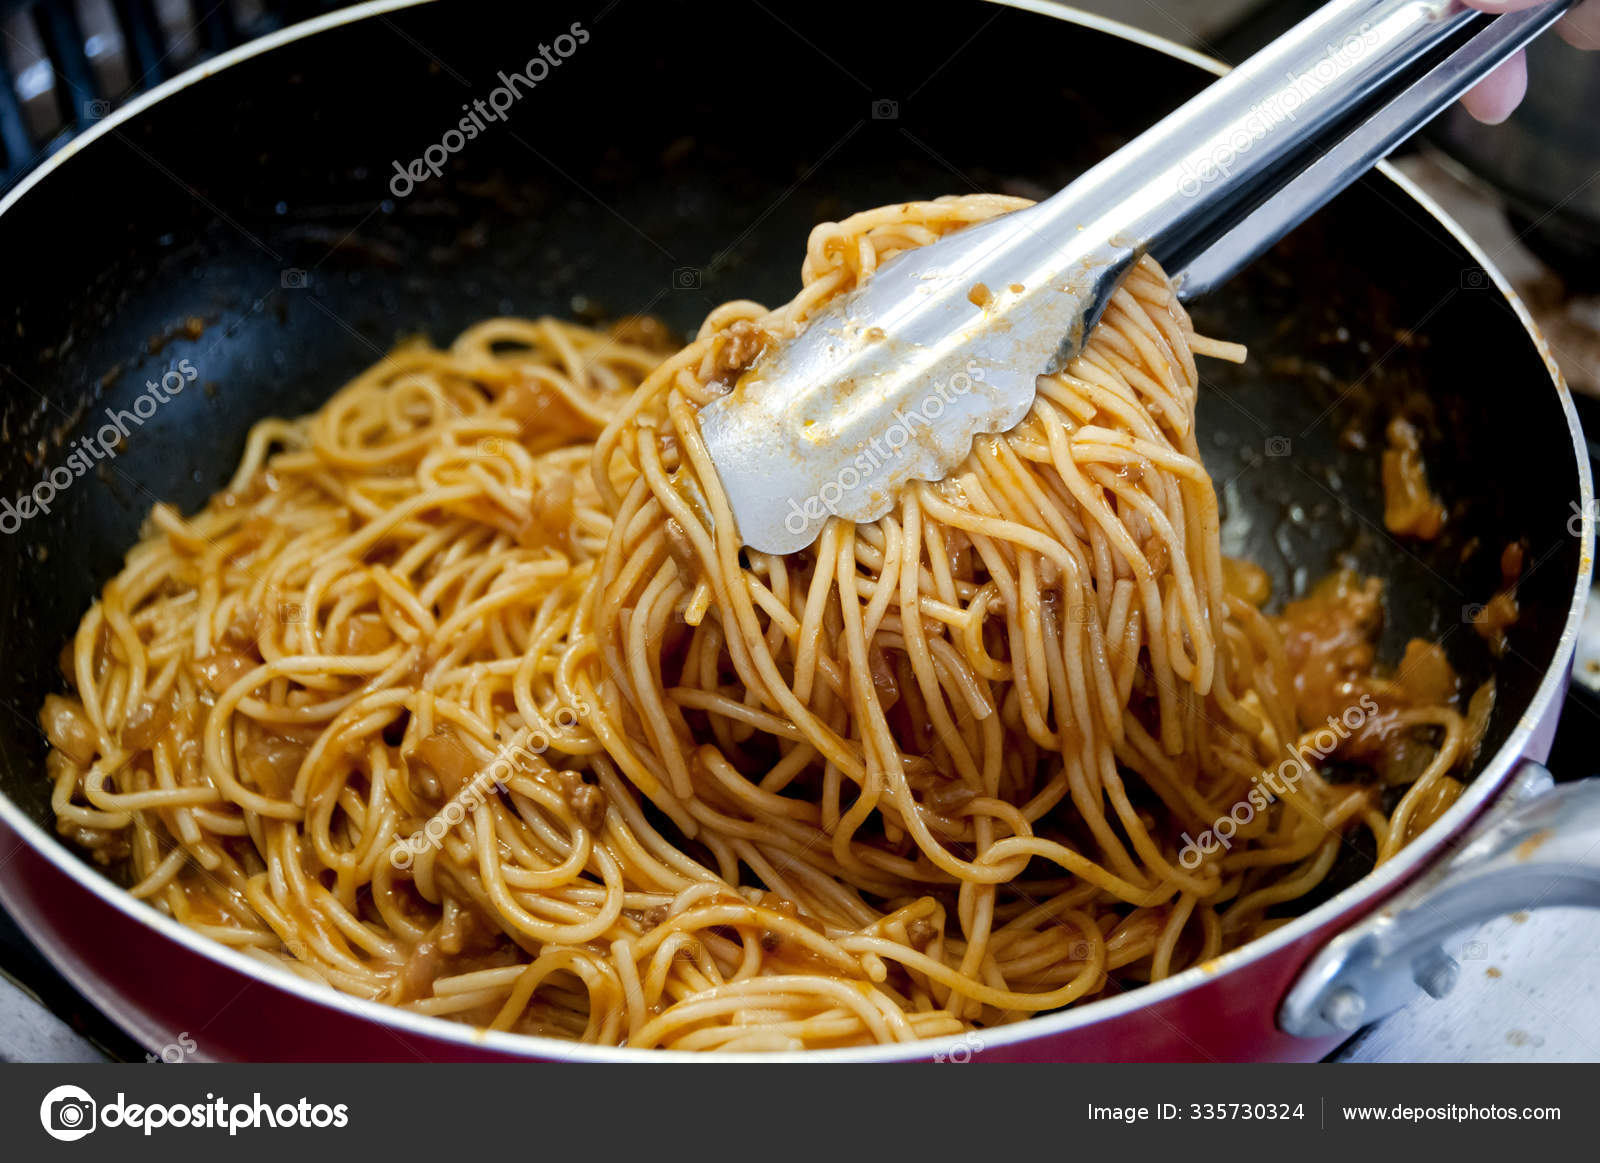 The Best Cooking spaghetti with meat sauce in frying pan on Gas stove 12